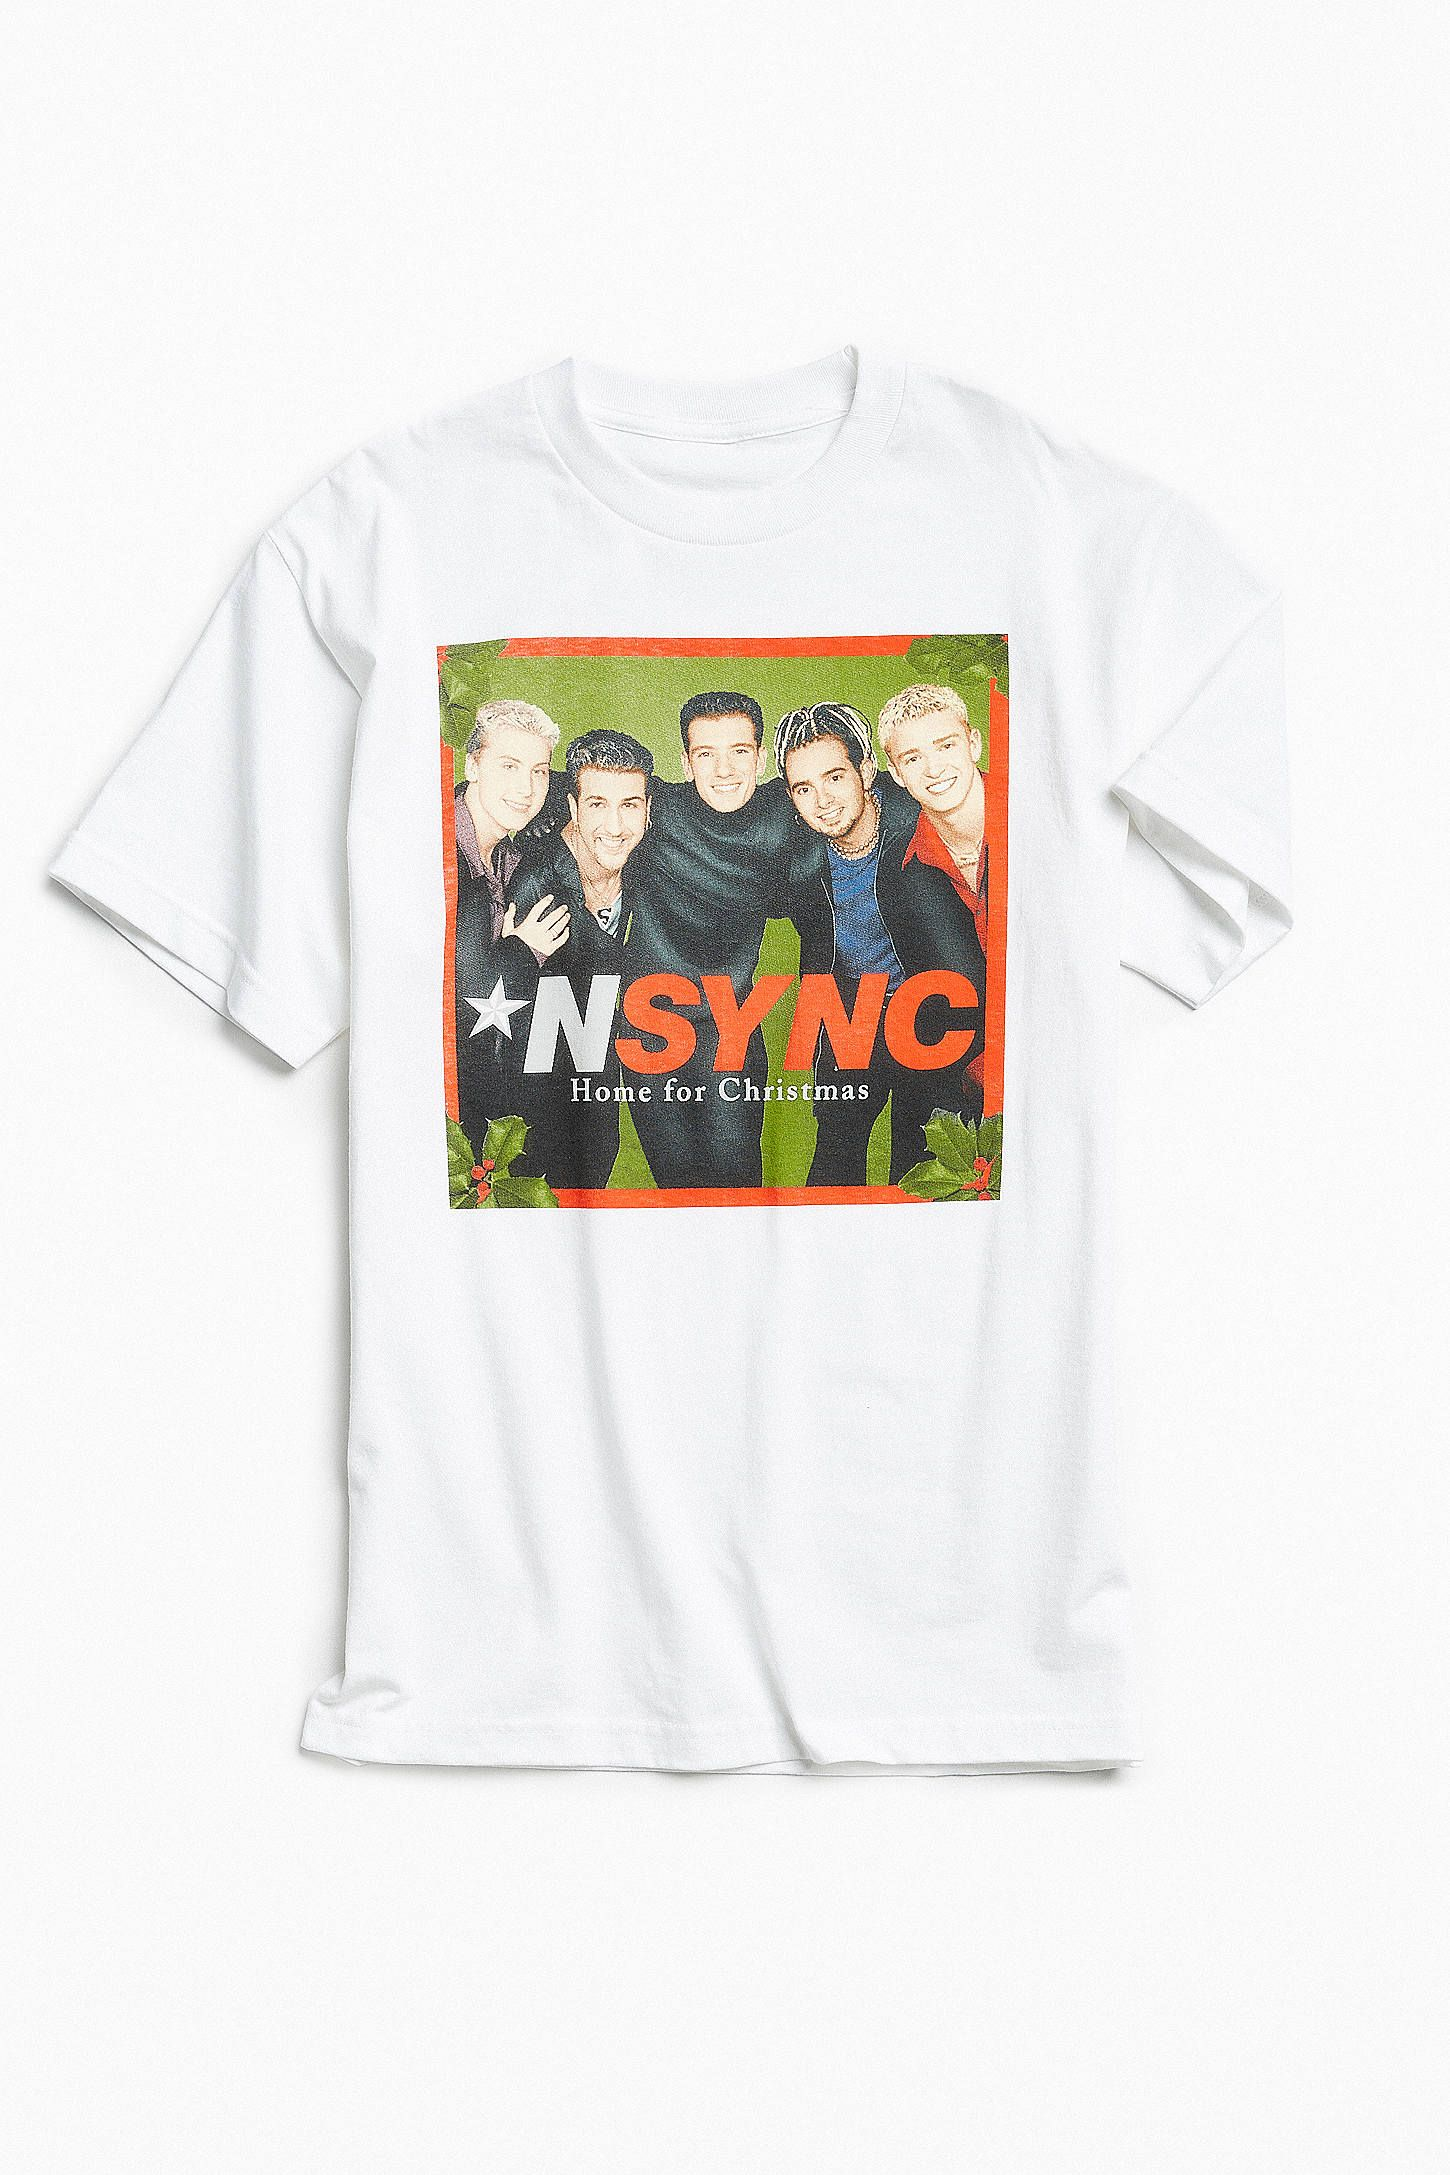 ba41794d6bcf Shop NSYNC Home For Christmas Tee at Urban Outfitters today. We carry all  the latest styles